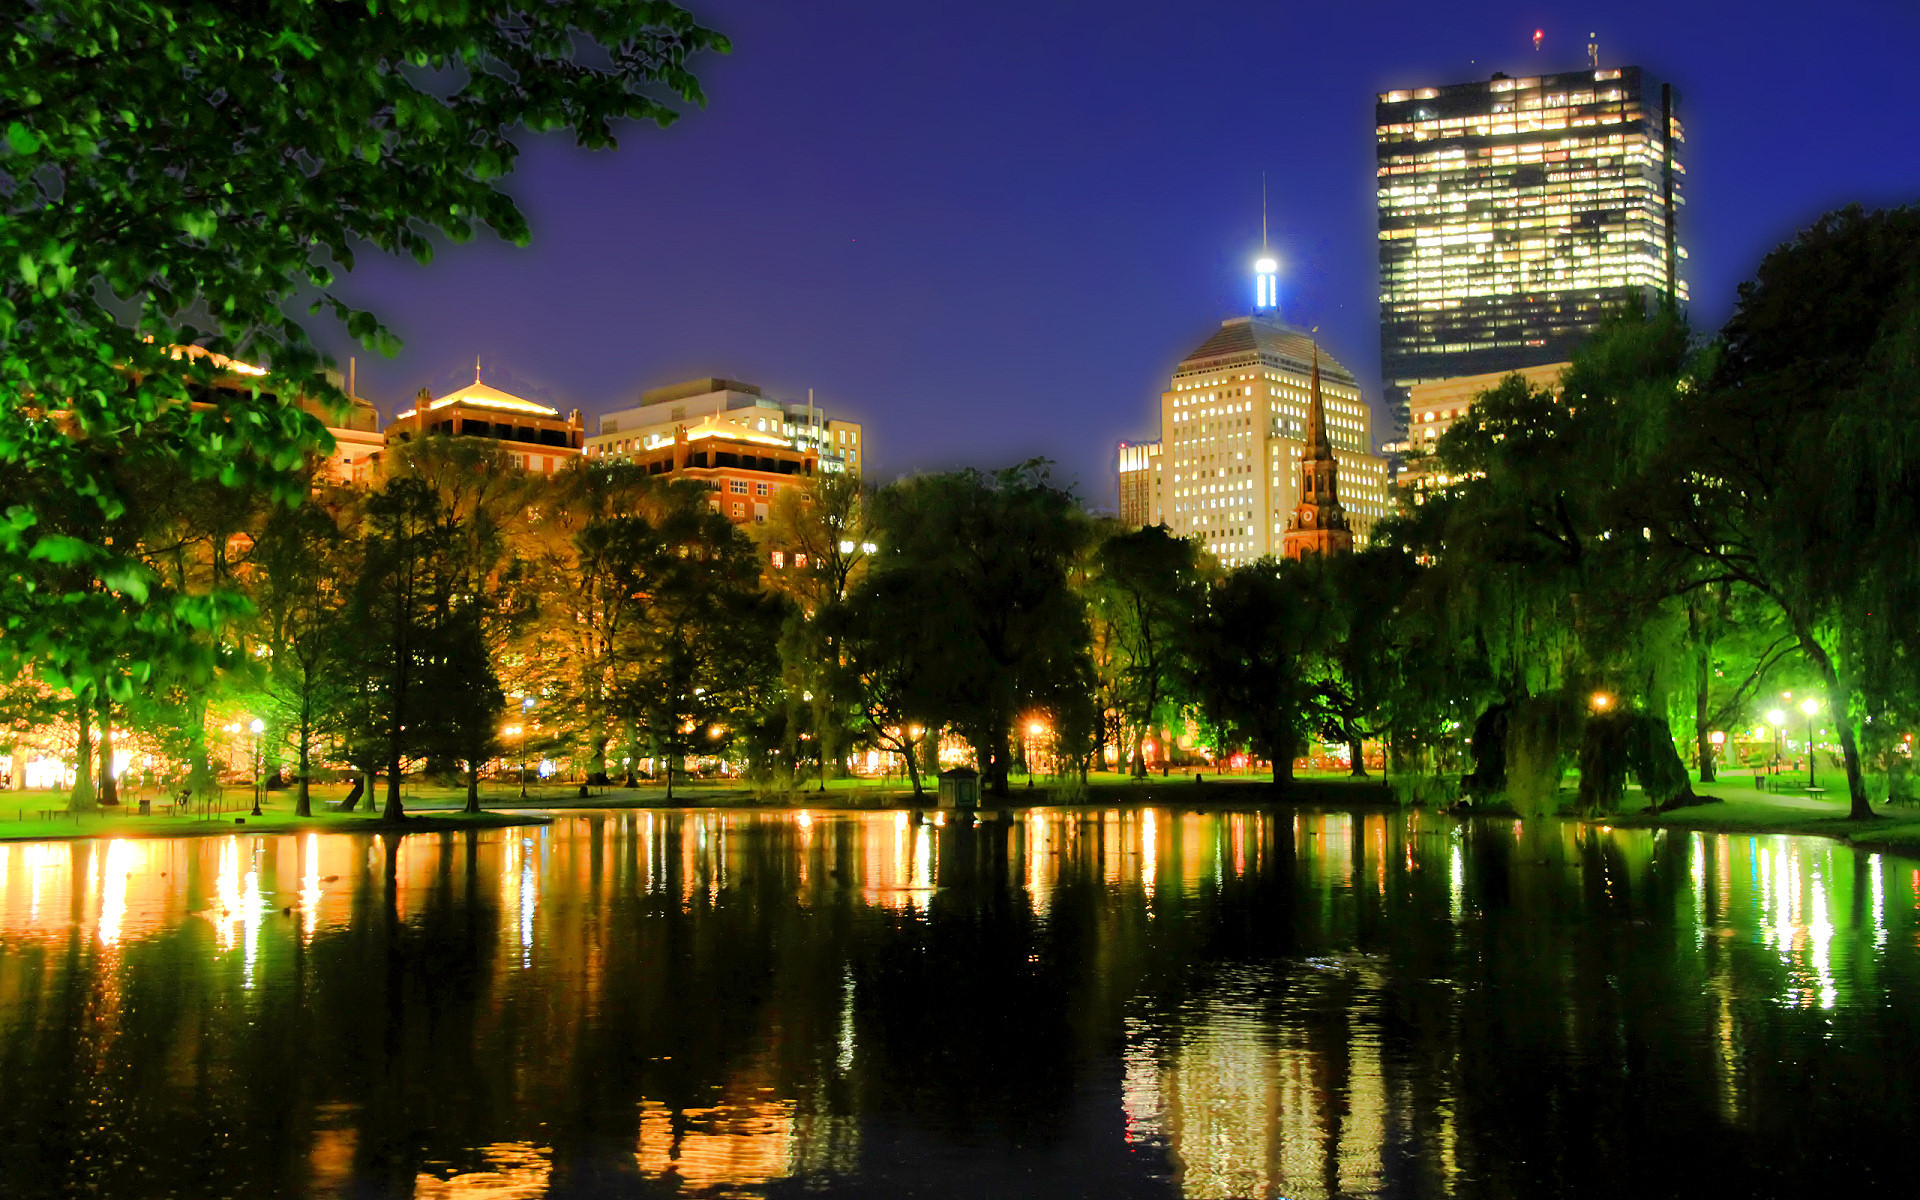 1920x1200 Boston City Night Skyline Hd Wallpaper Free Download | Daily Pics .